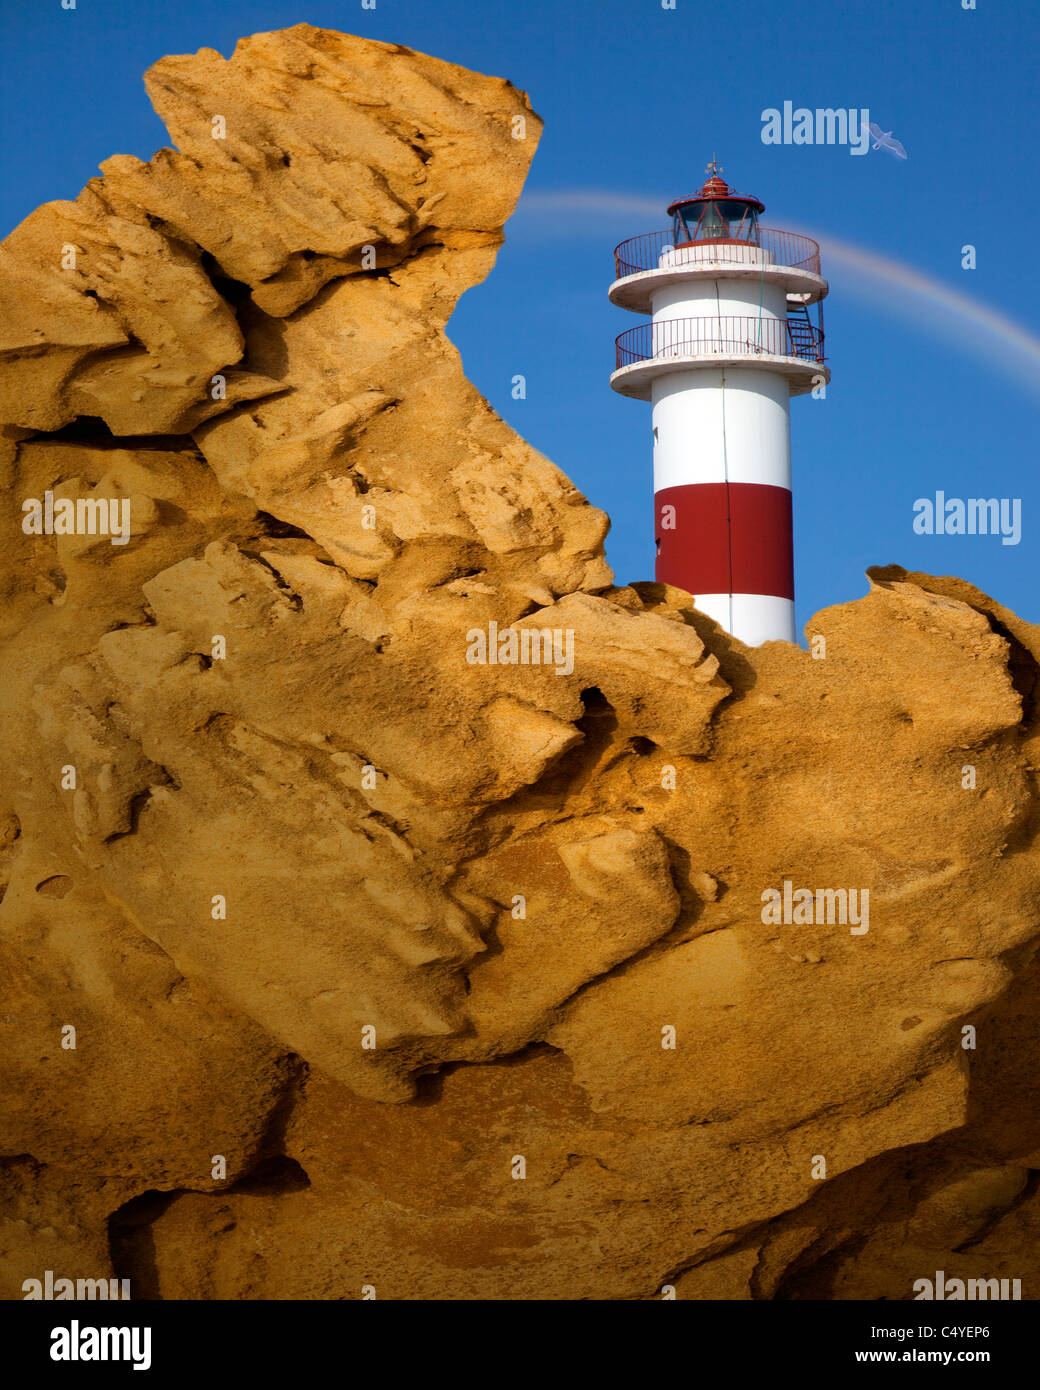 ES - Andalusien: The Lighthouse in Rota, Costa De La Luz Stockbild